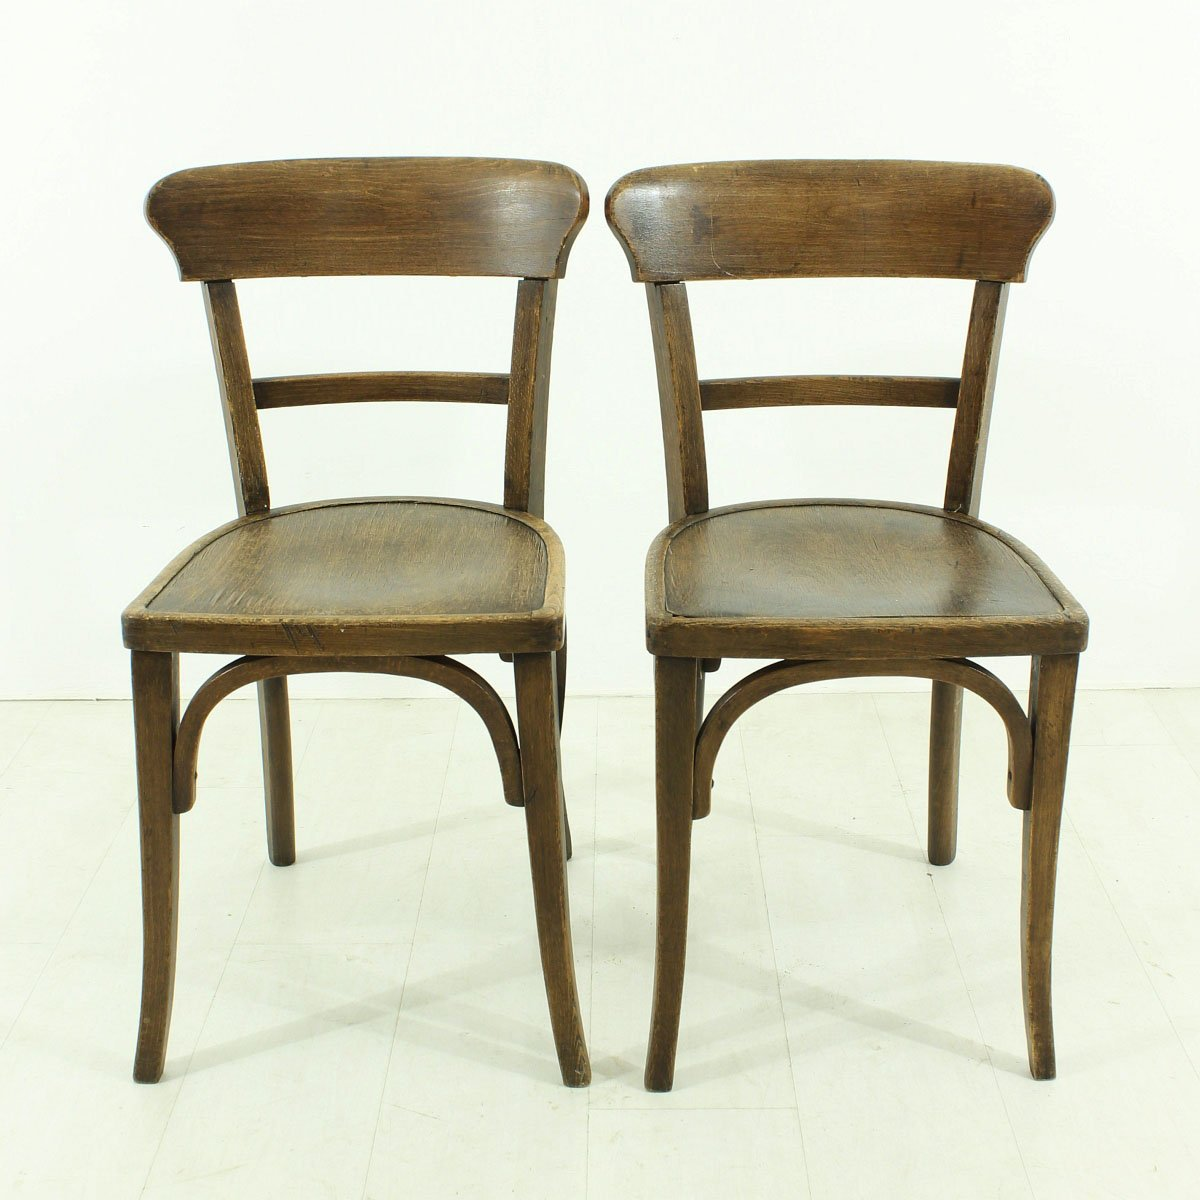 retro dining chairs ireland navy blue wooden rocking chair vintage 1930s set of 2 for sale at pamono